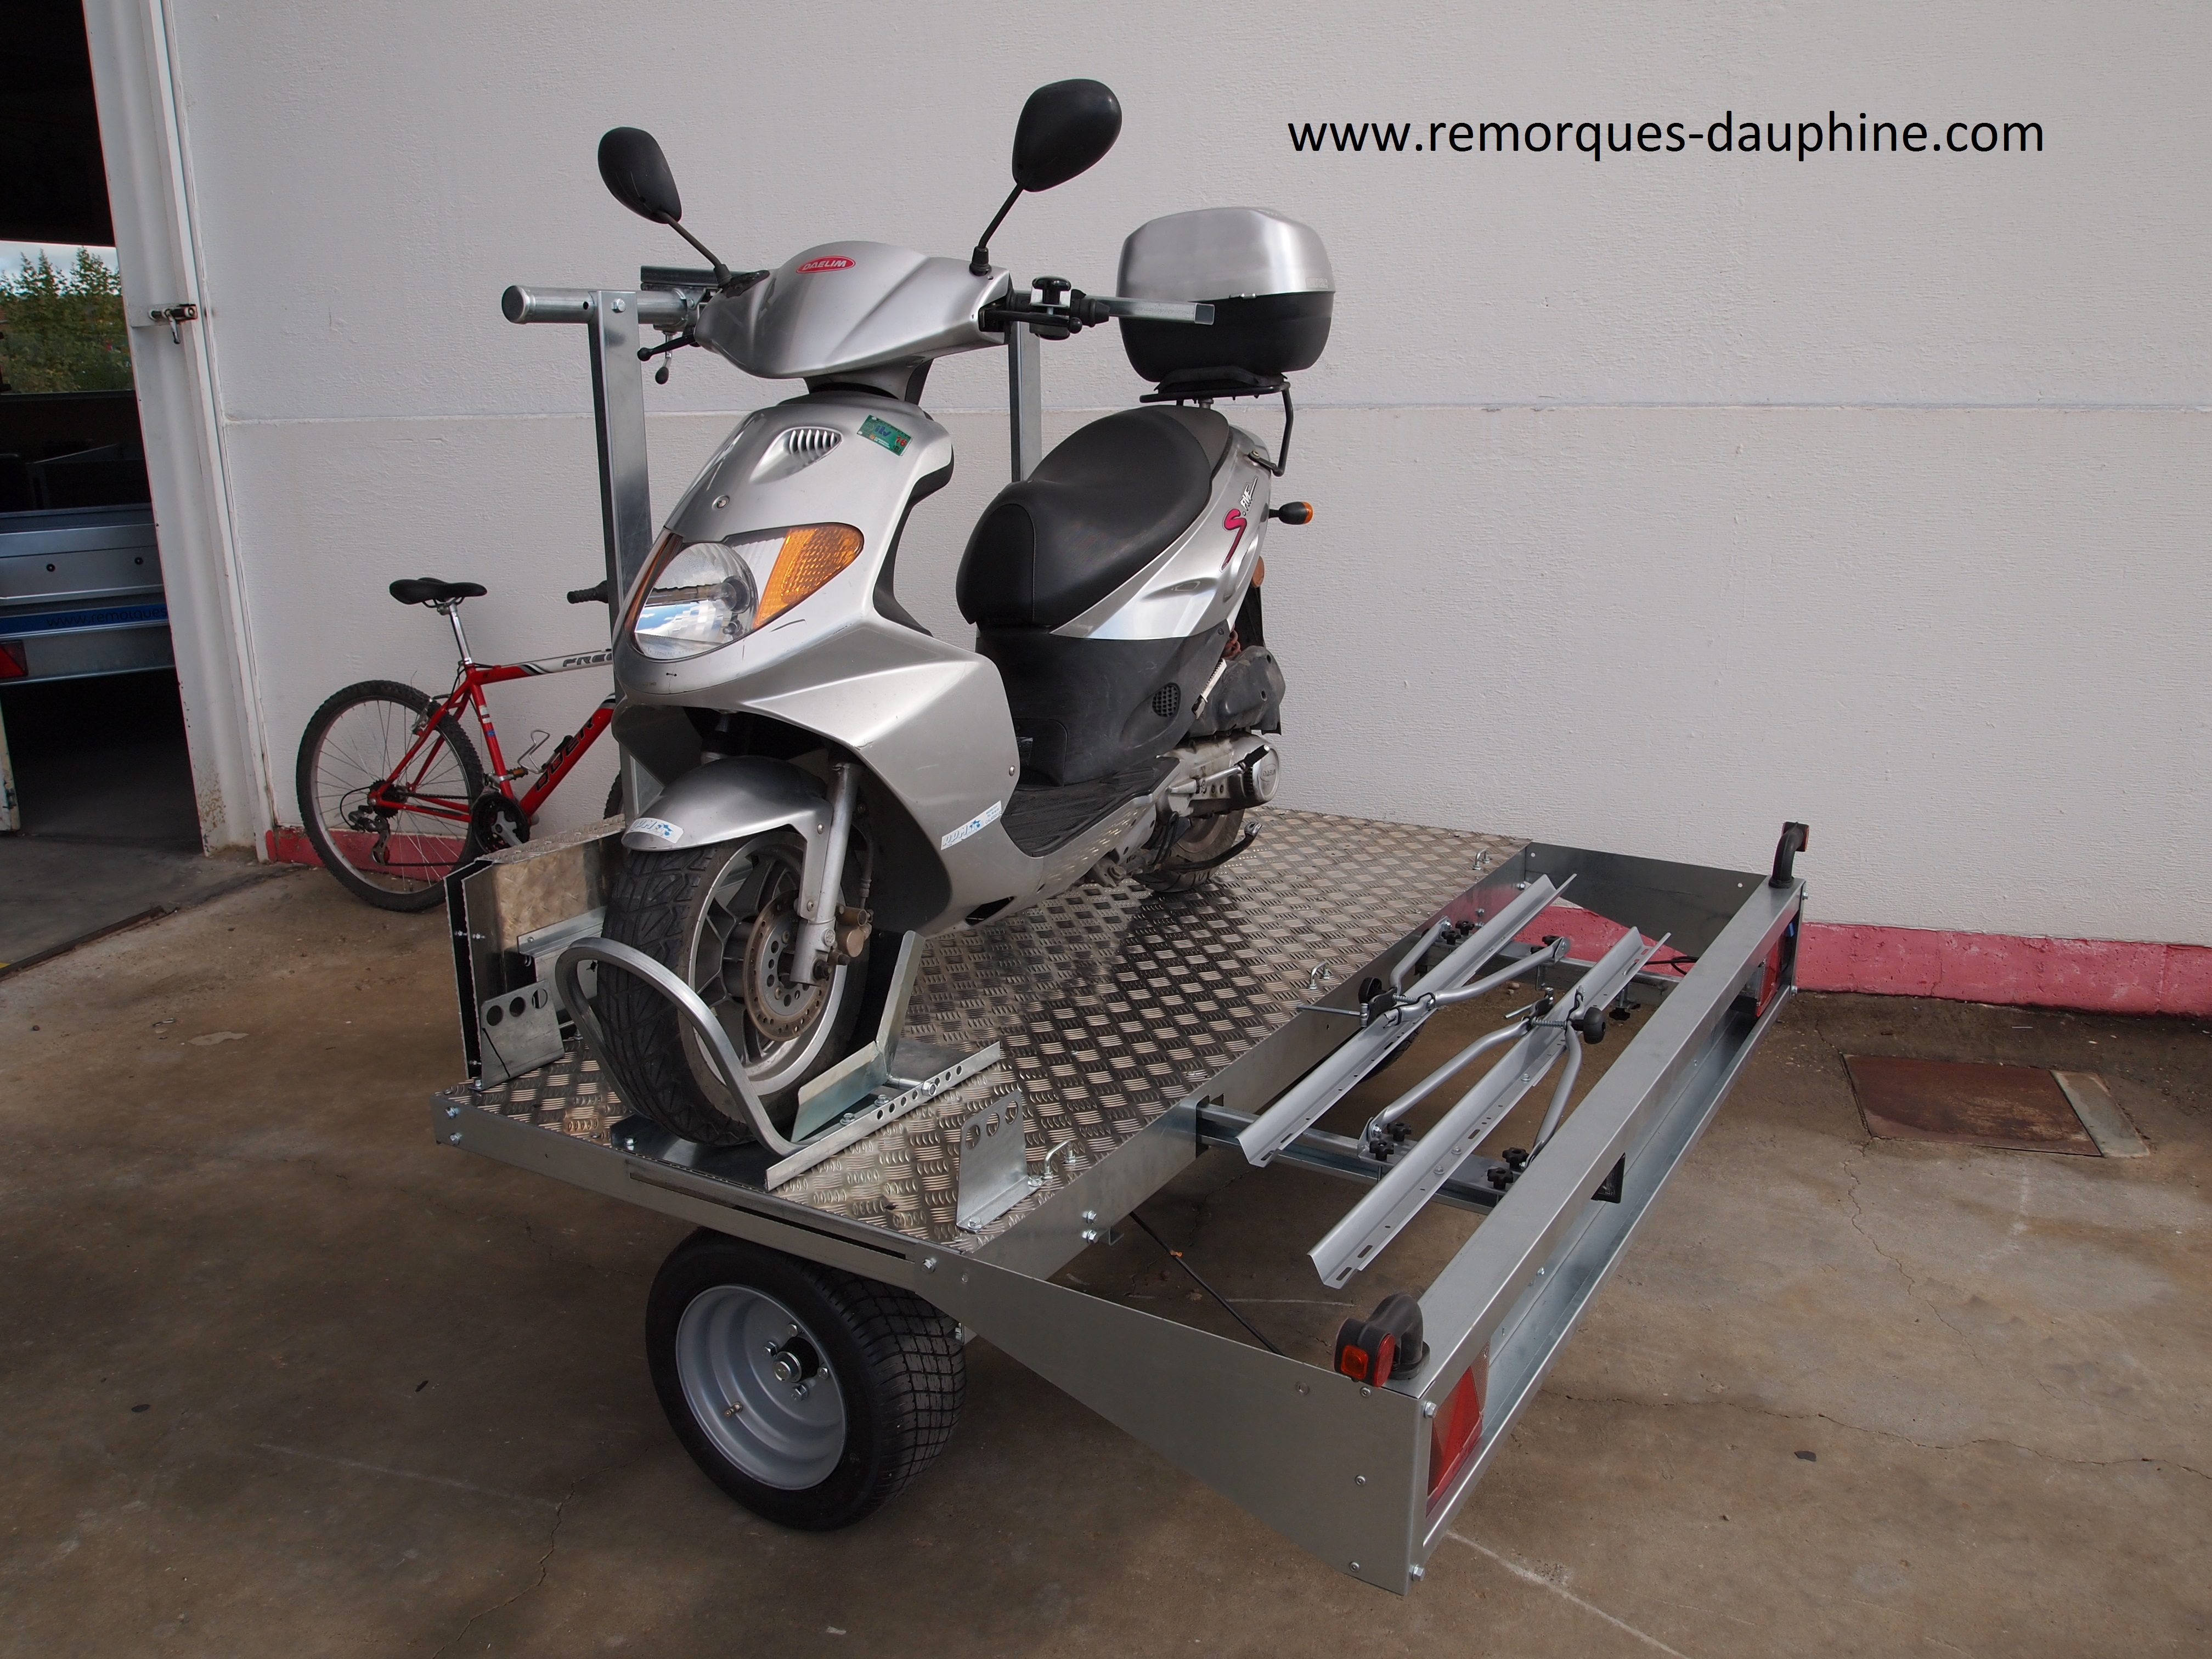 Moto pour camping car occasion